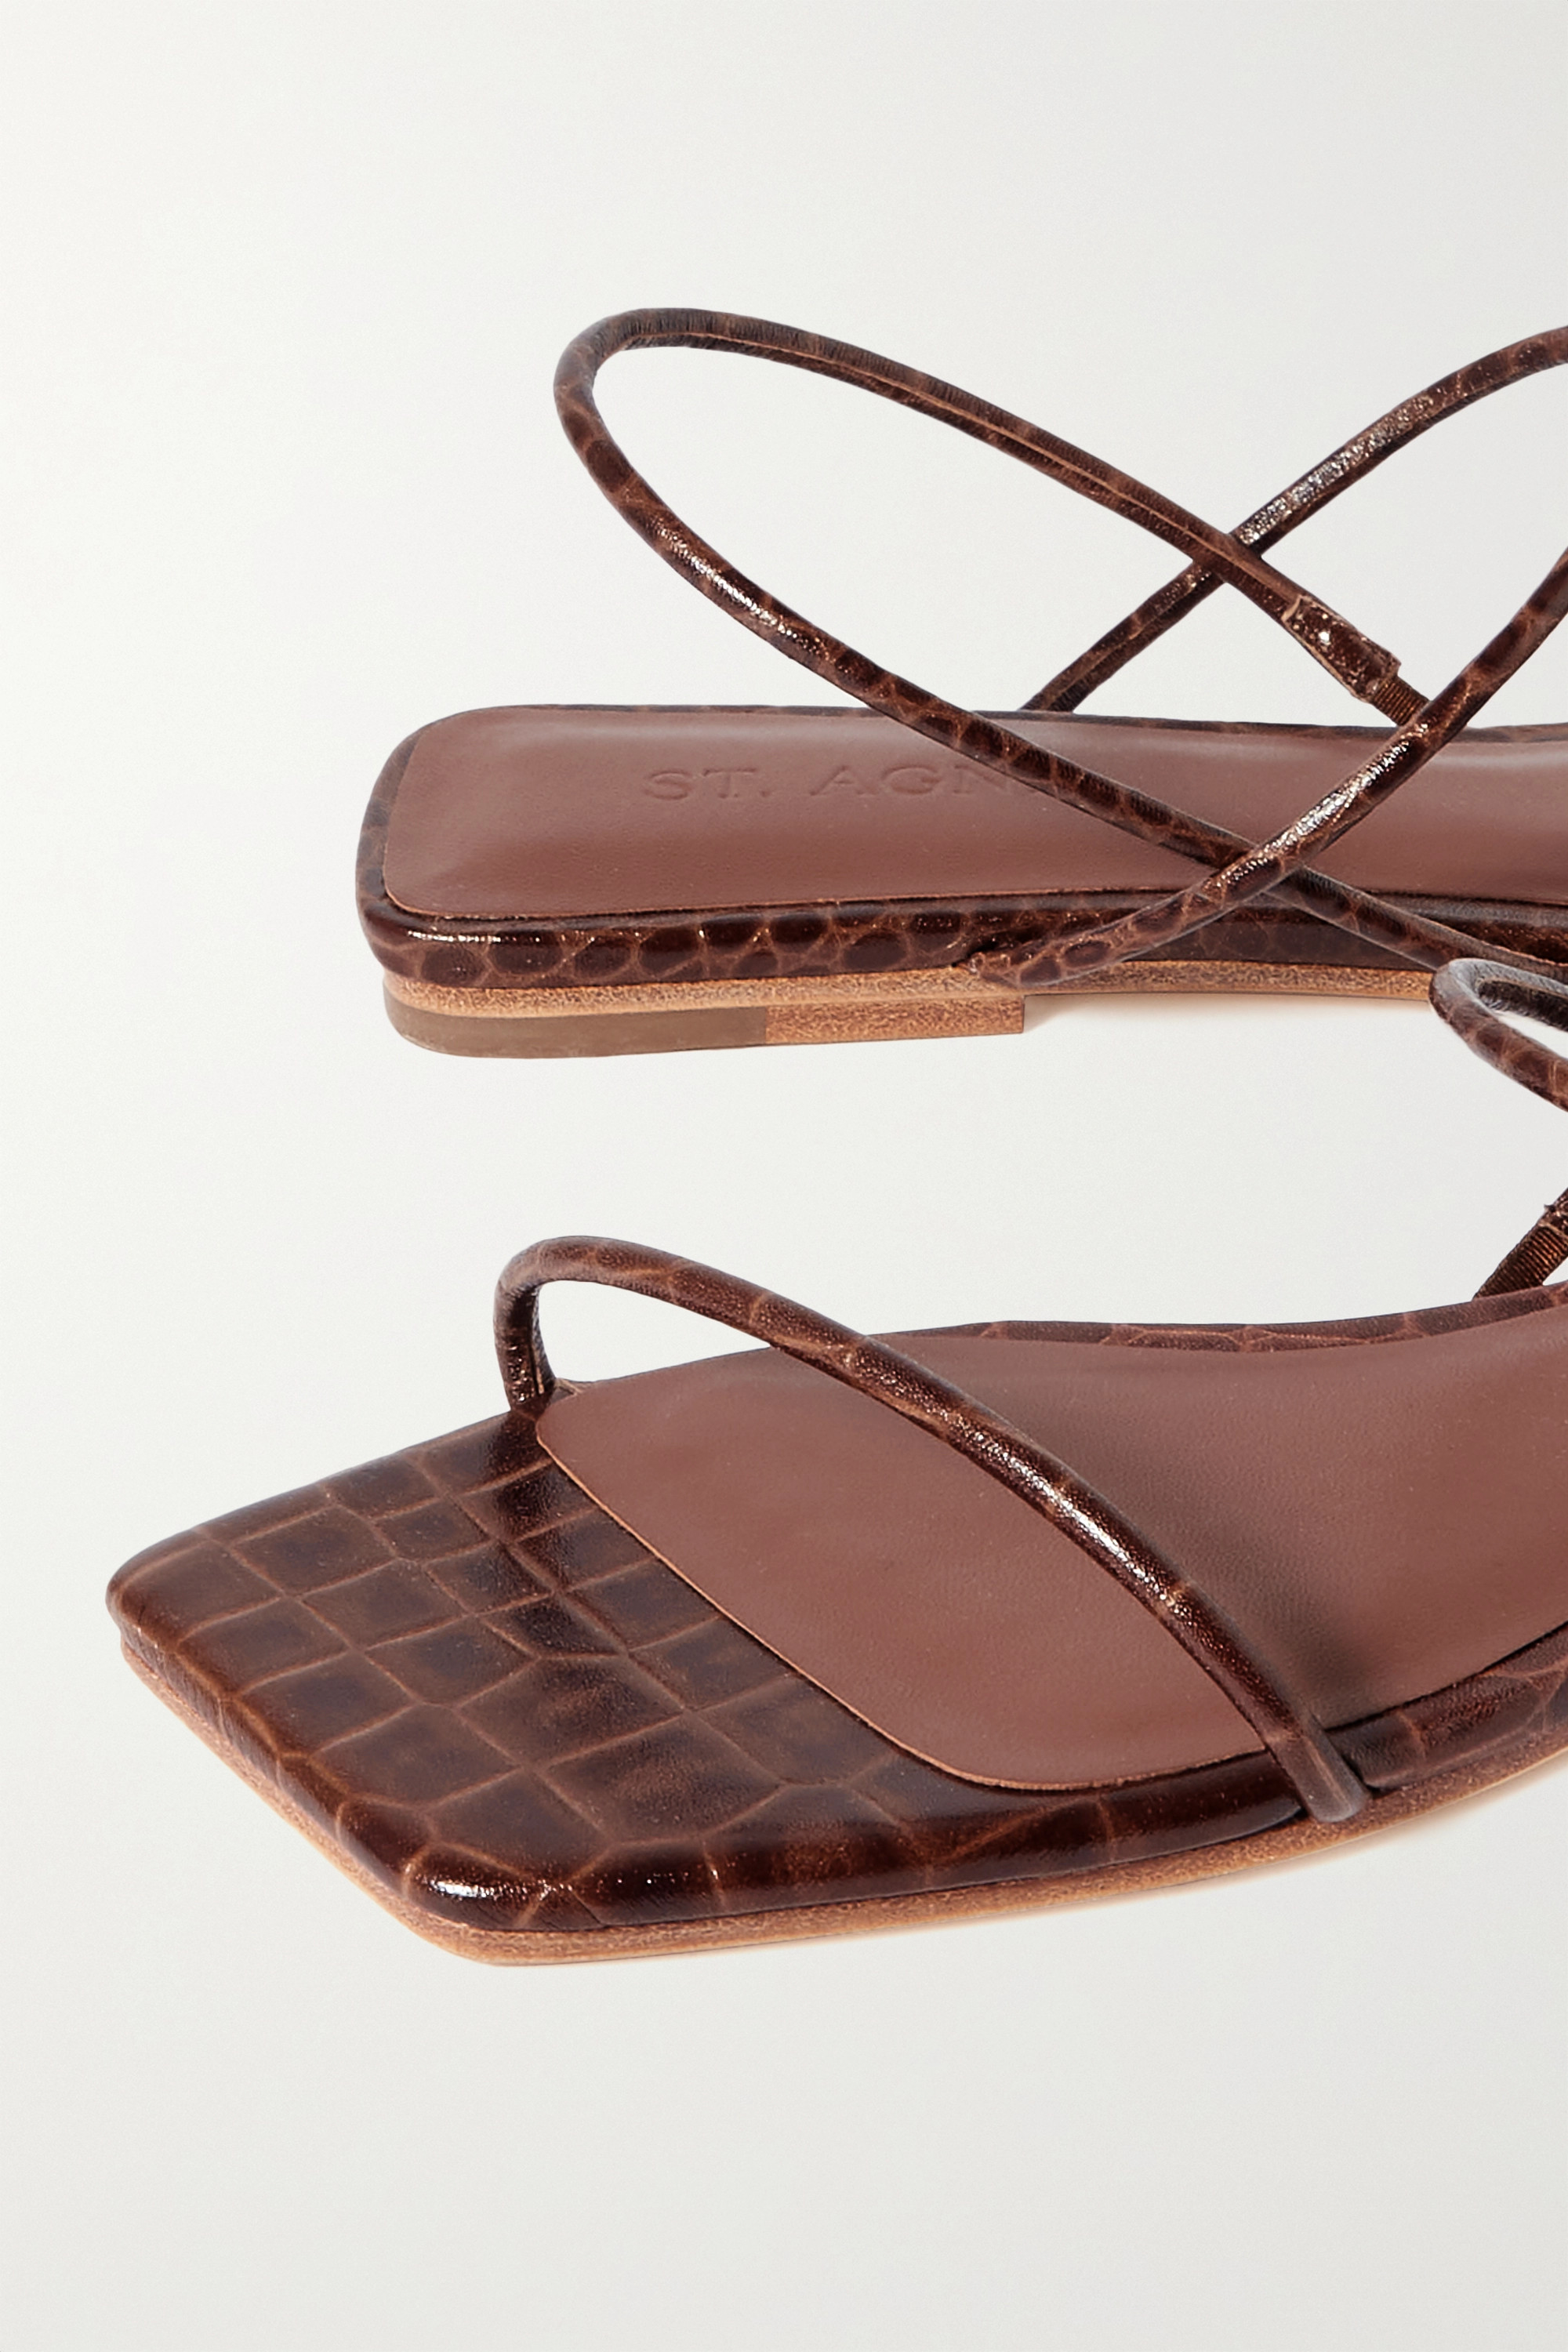 ST. AGNI + NET SUSTAIN Pina croc-effect leather slingback sandals